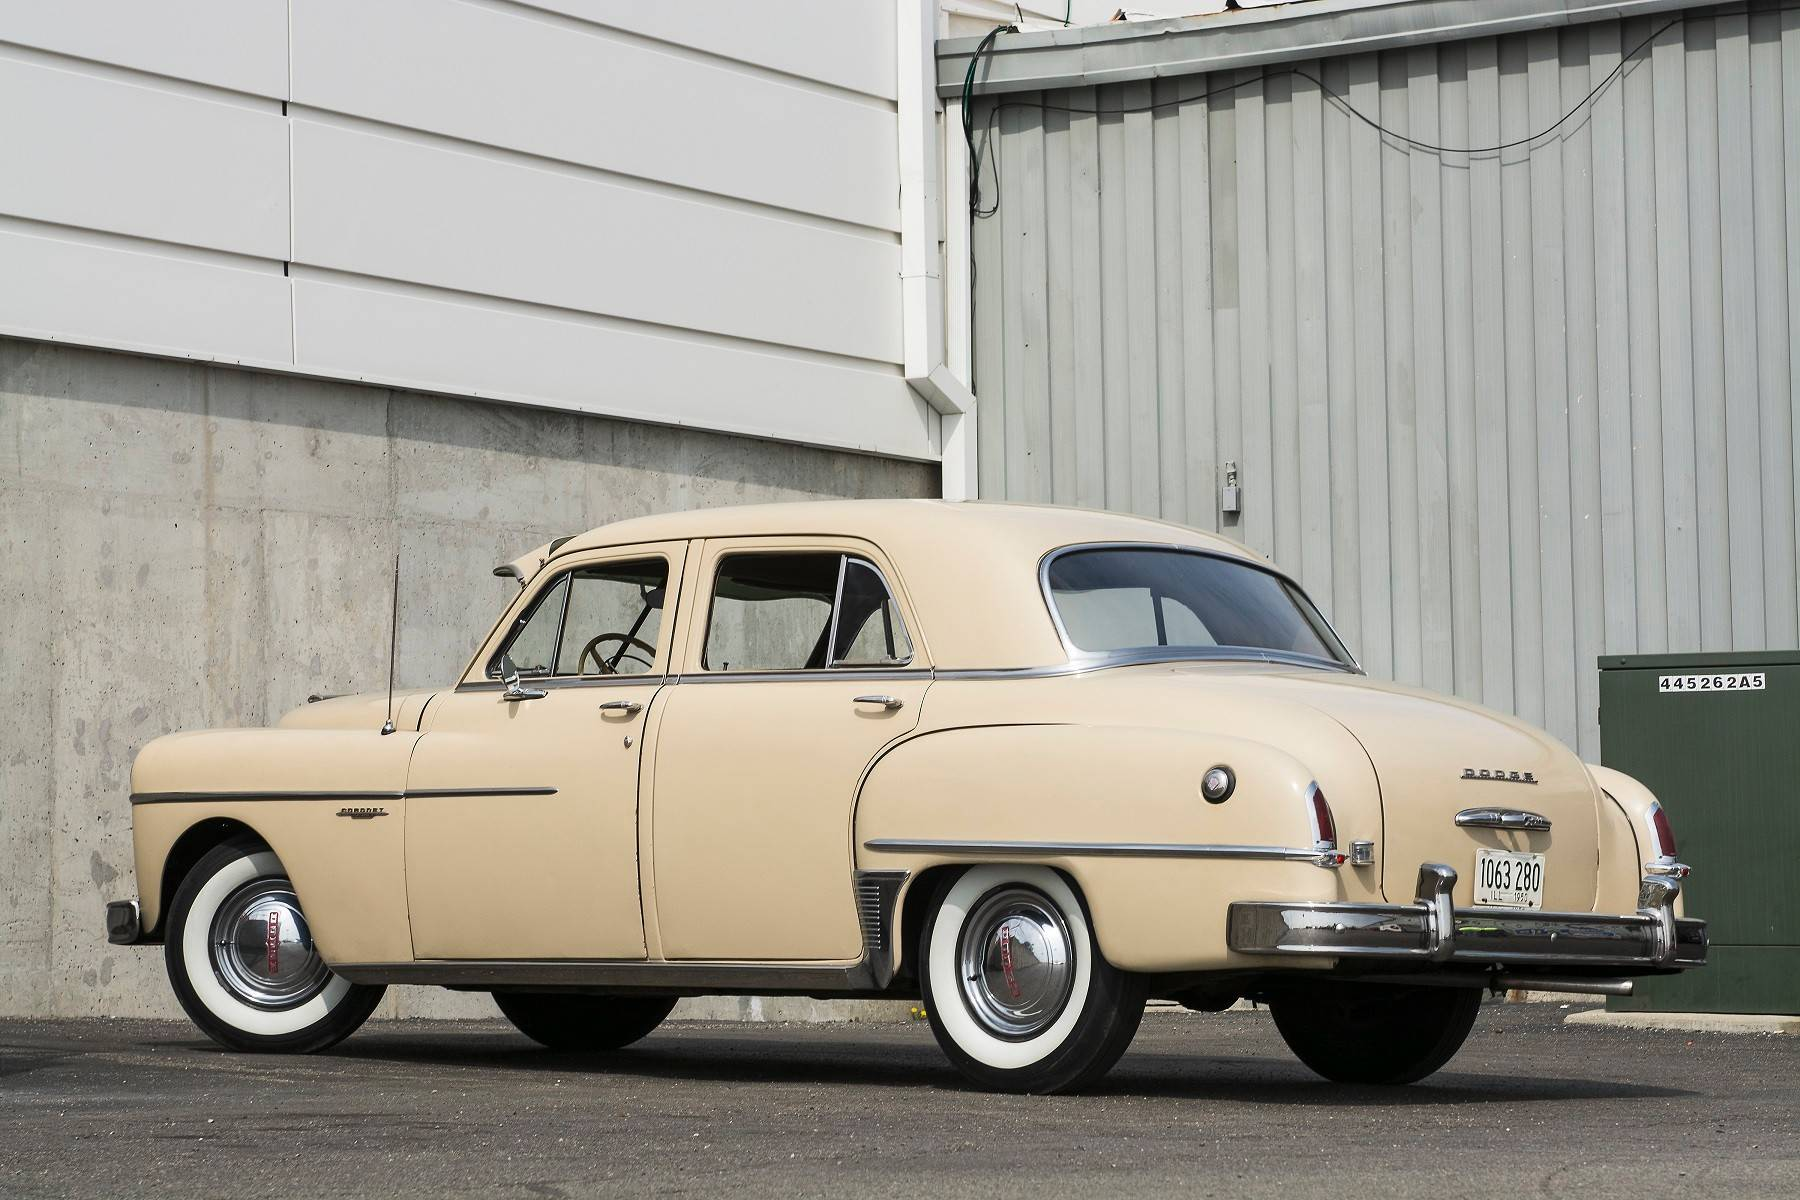 The original sticker price of the 1950 Coronet was around $2,100.